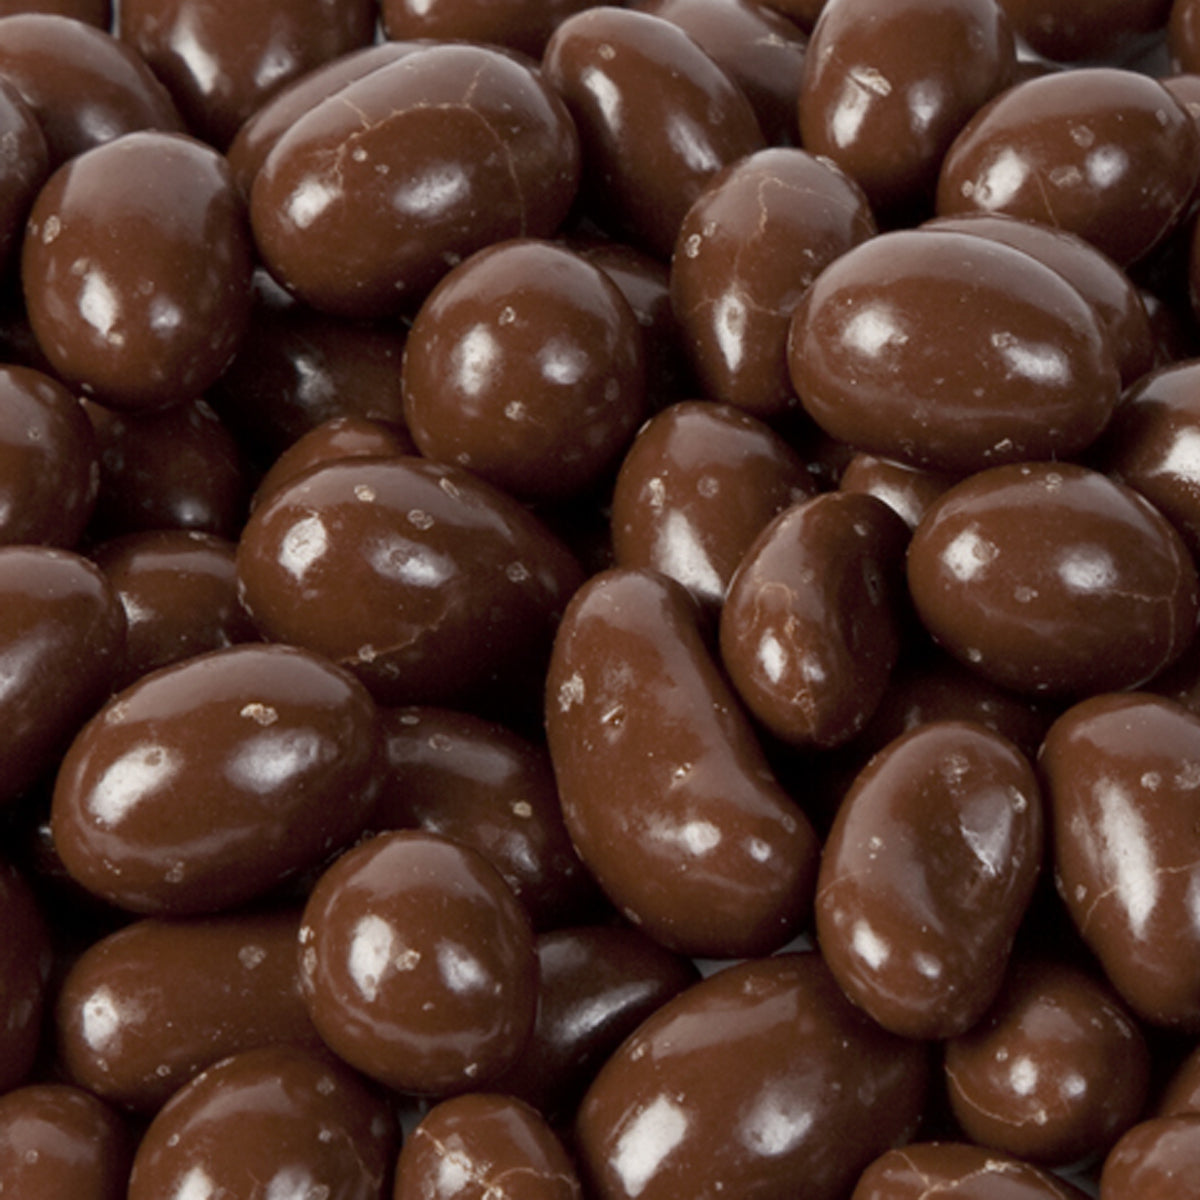 Milk Chocolate Roasted Peanuts | The Confectionery House | Online Chocolate